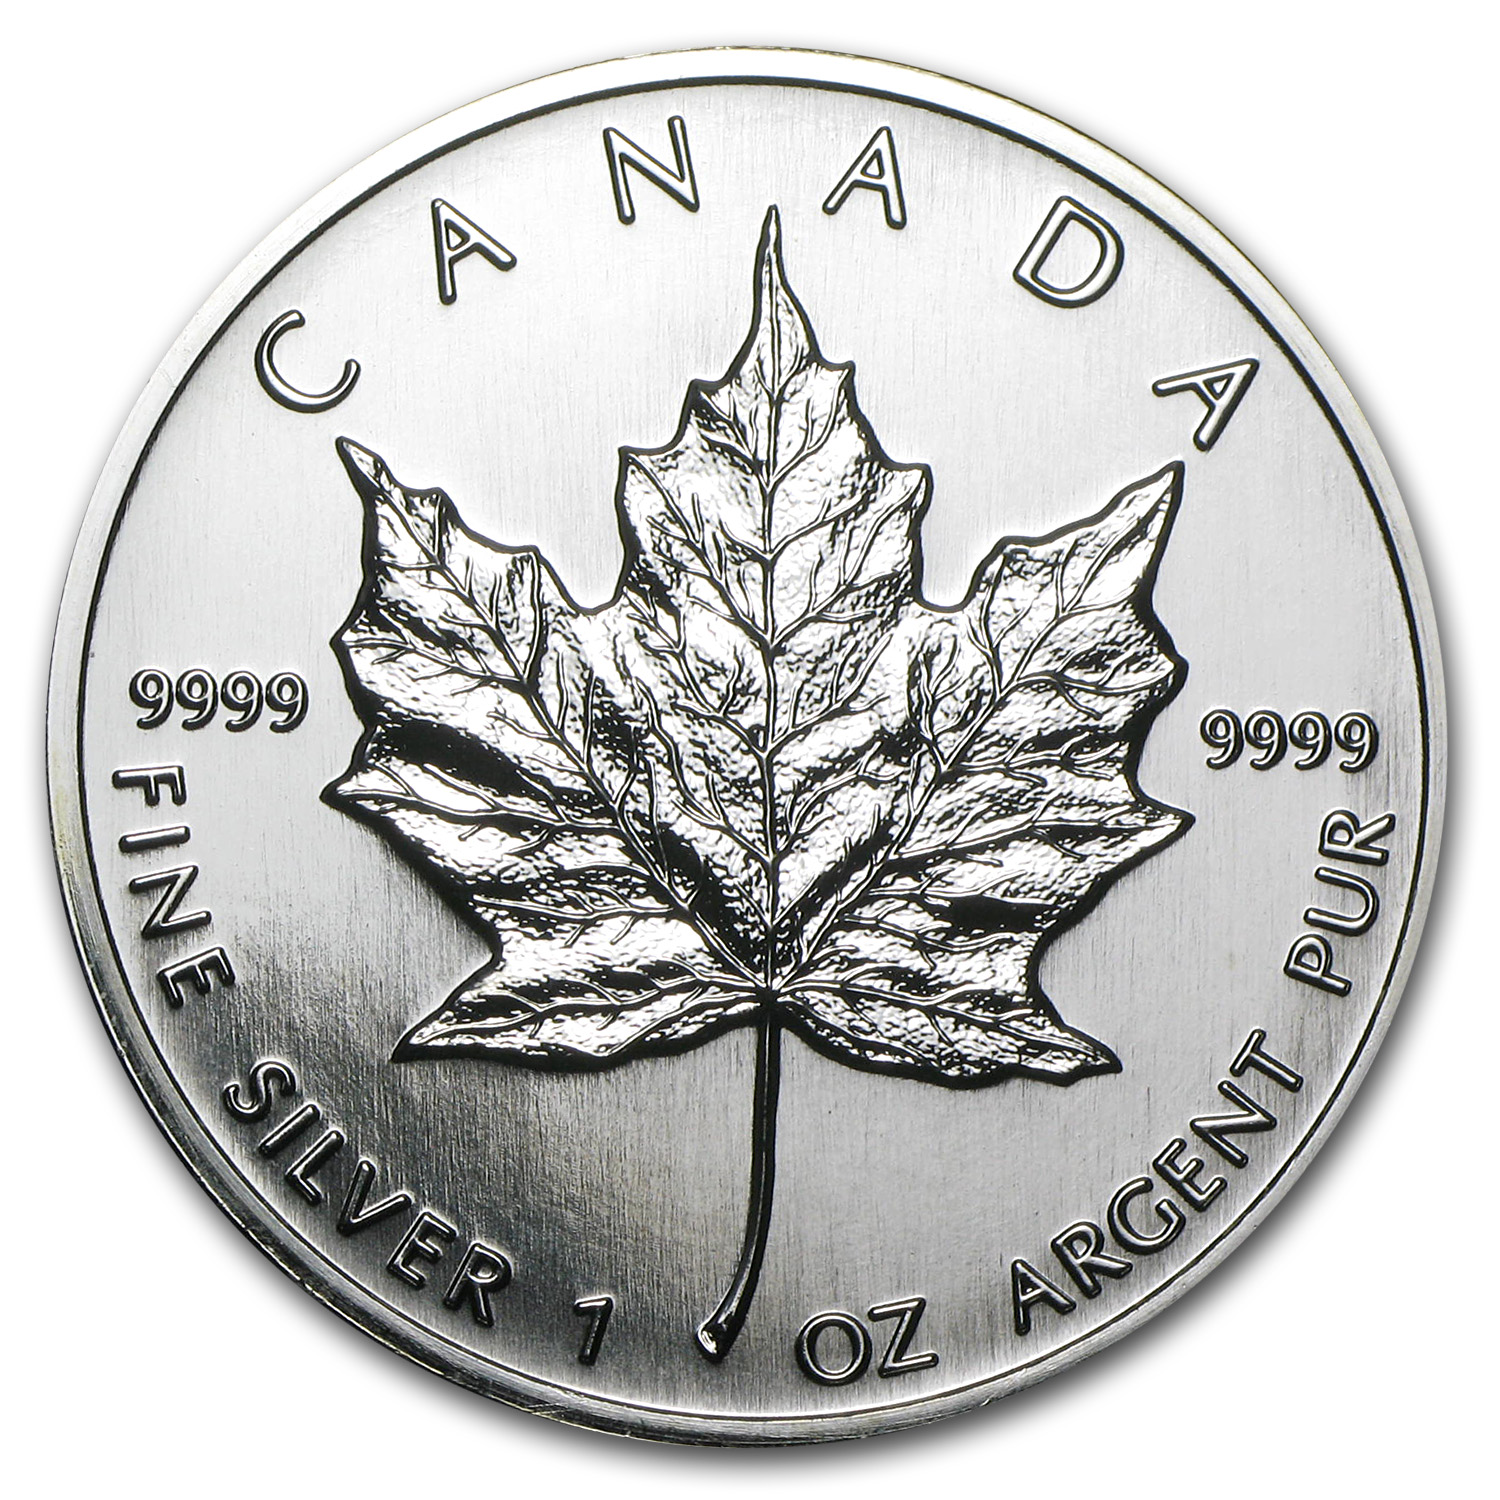 1996 1 oz Silver Canadian Maple Leaf BU